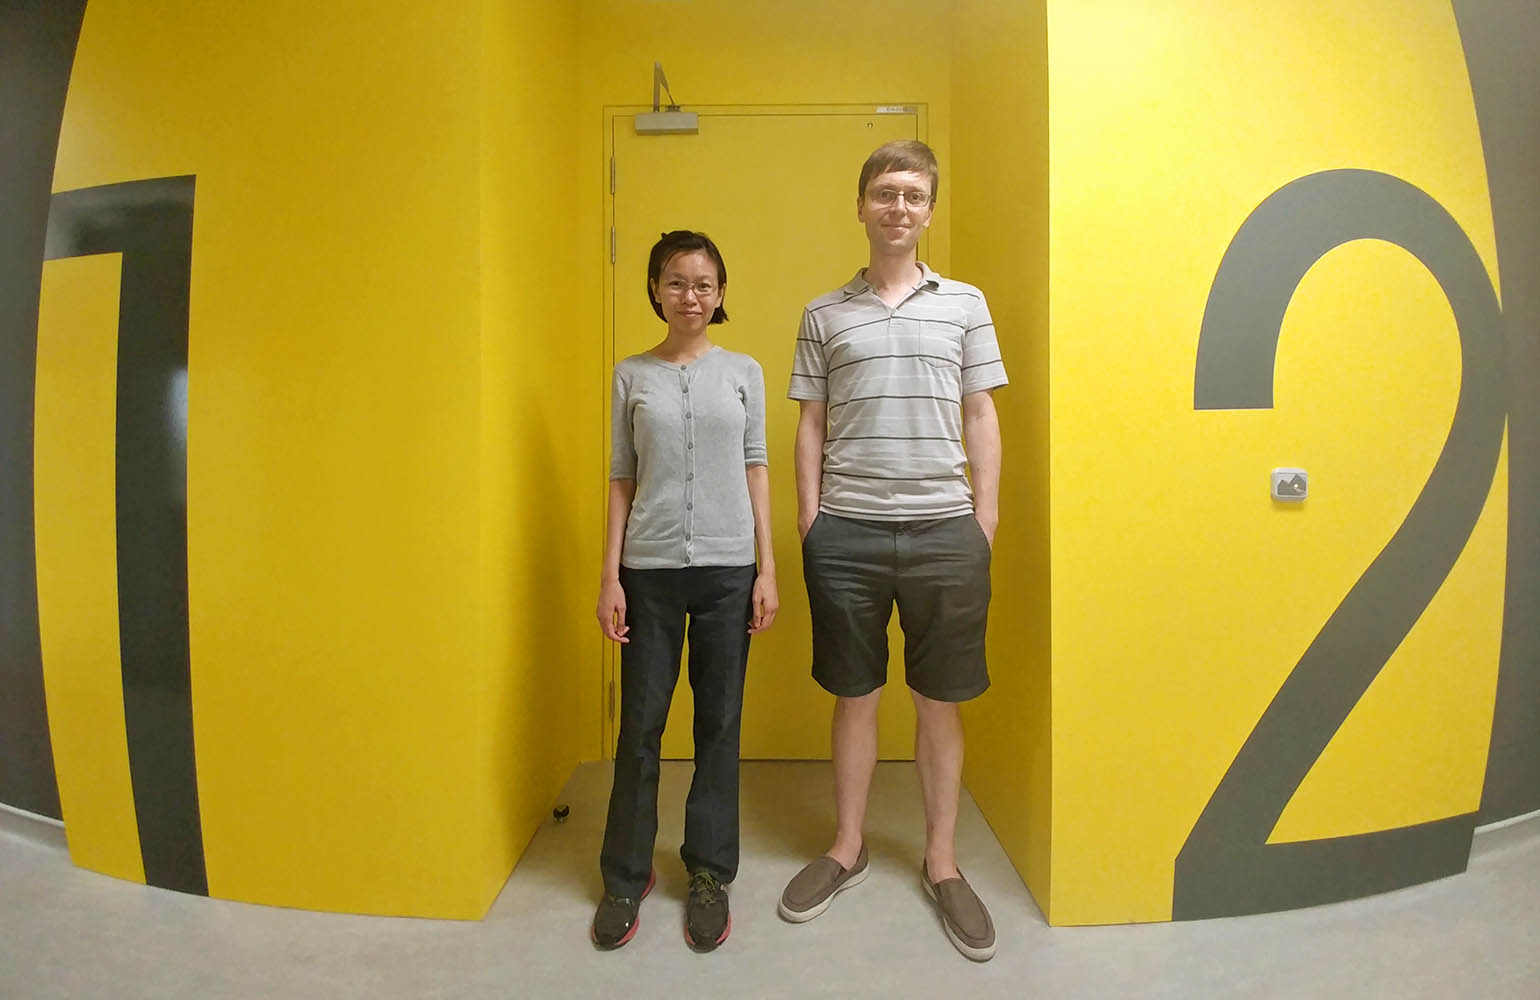 Loh Huanqian and Travis Nicholson